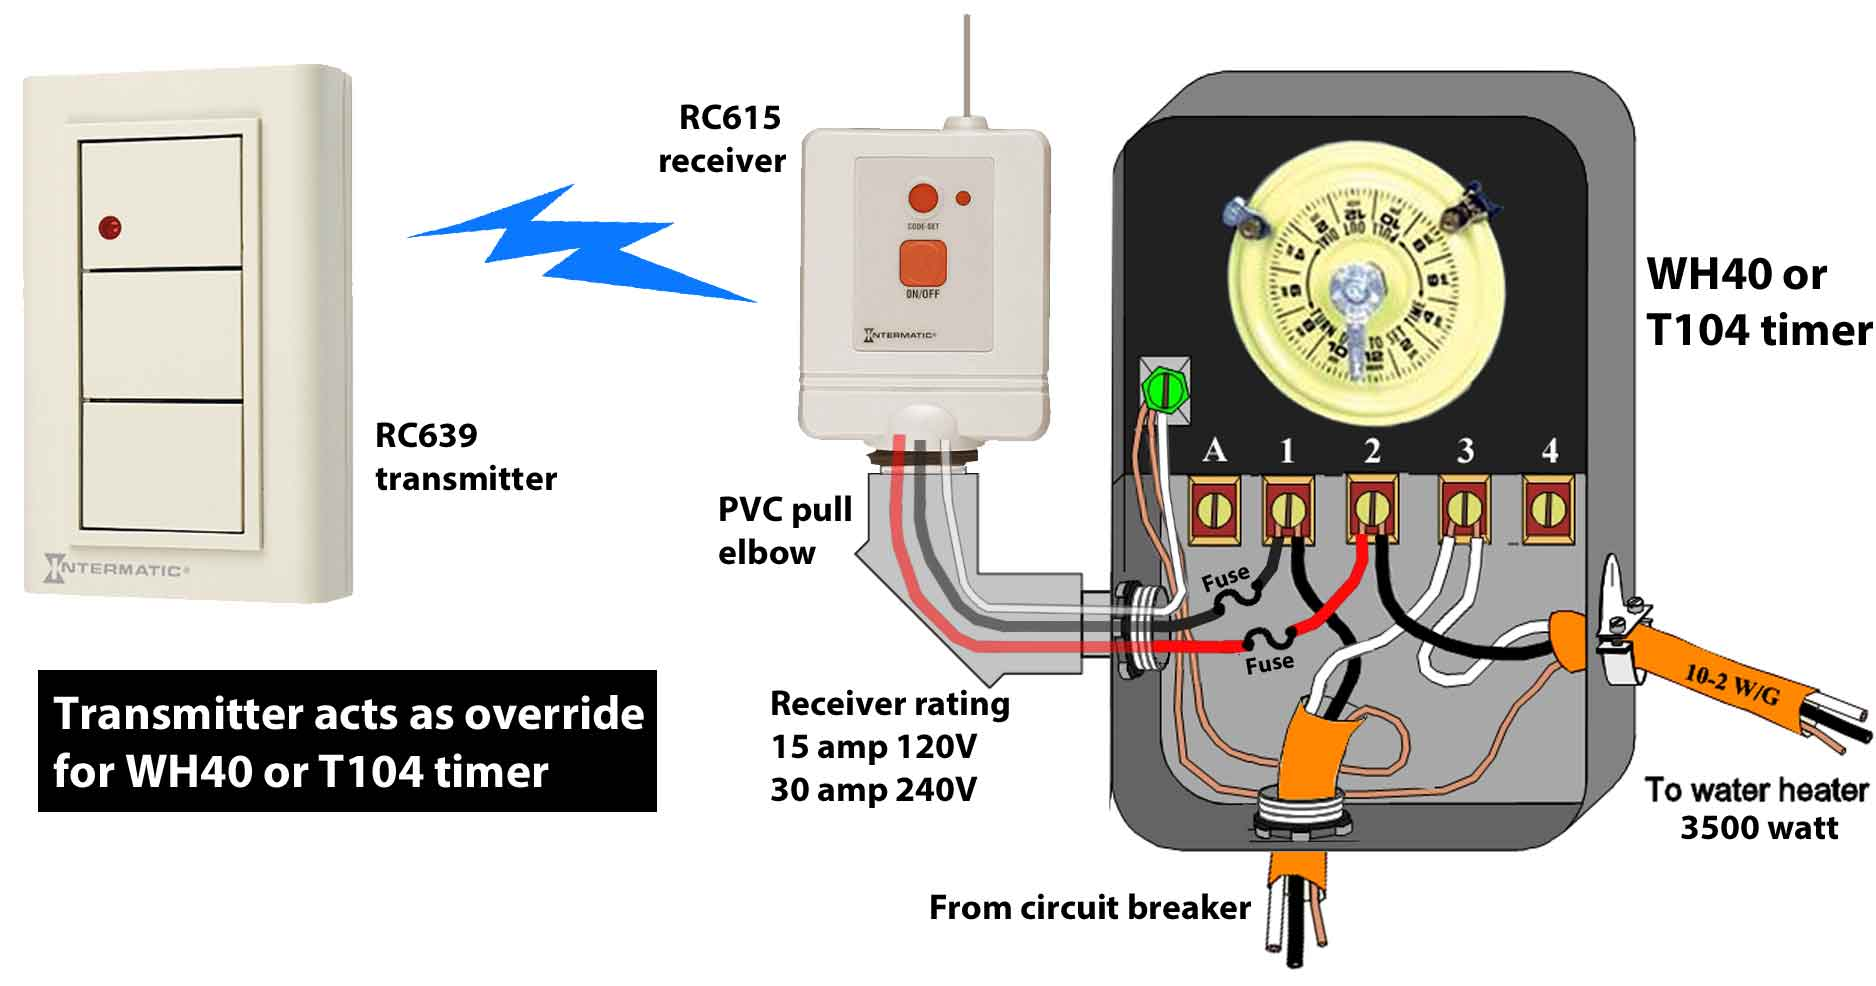 Intermatic remote RC control how to wire wh40 water heater timer water heater wiring diagram at suagrazia.org